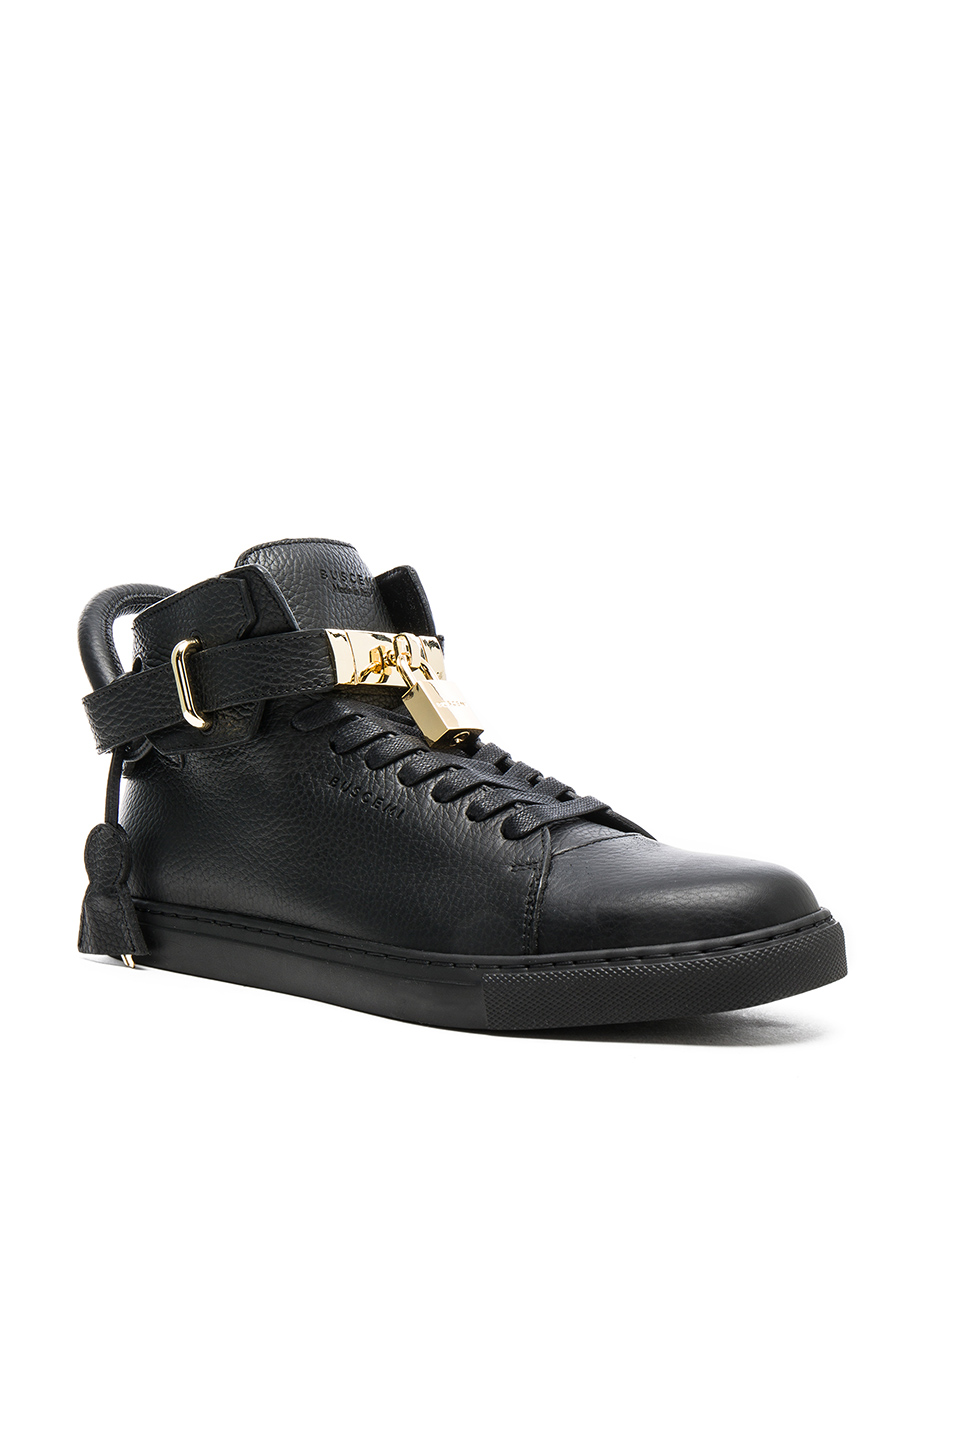 Buscemi 100MM High Top Pebbled Leather Sneakers in Black